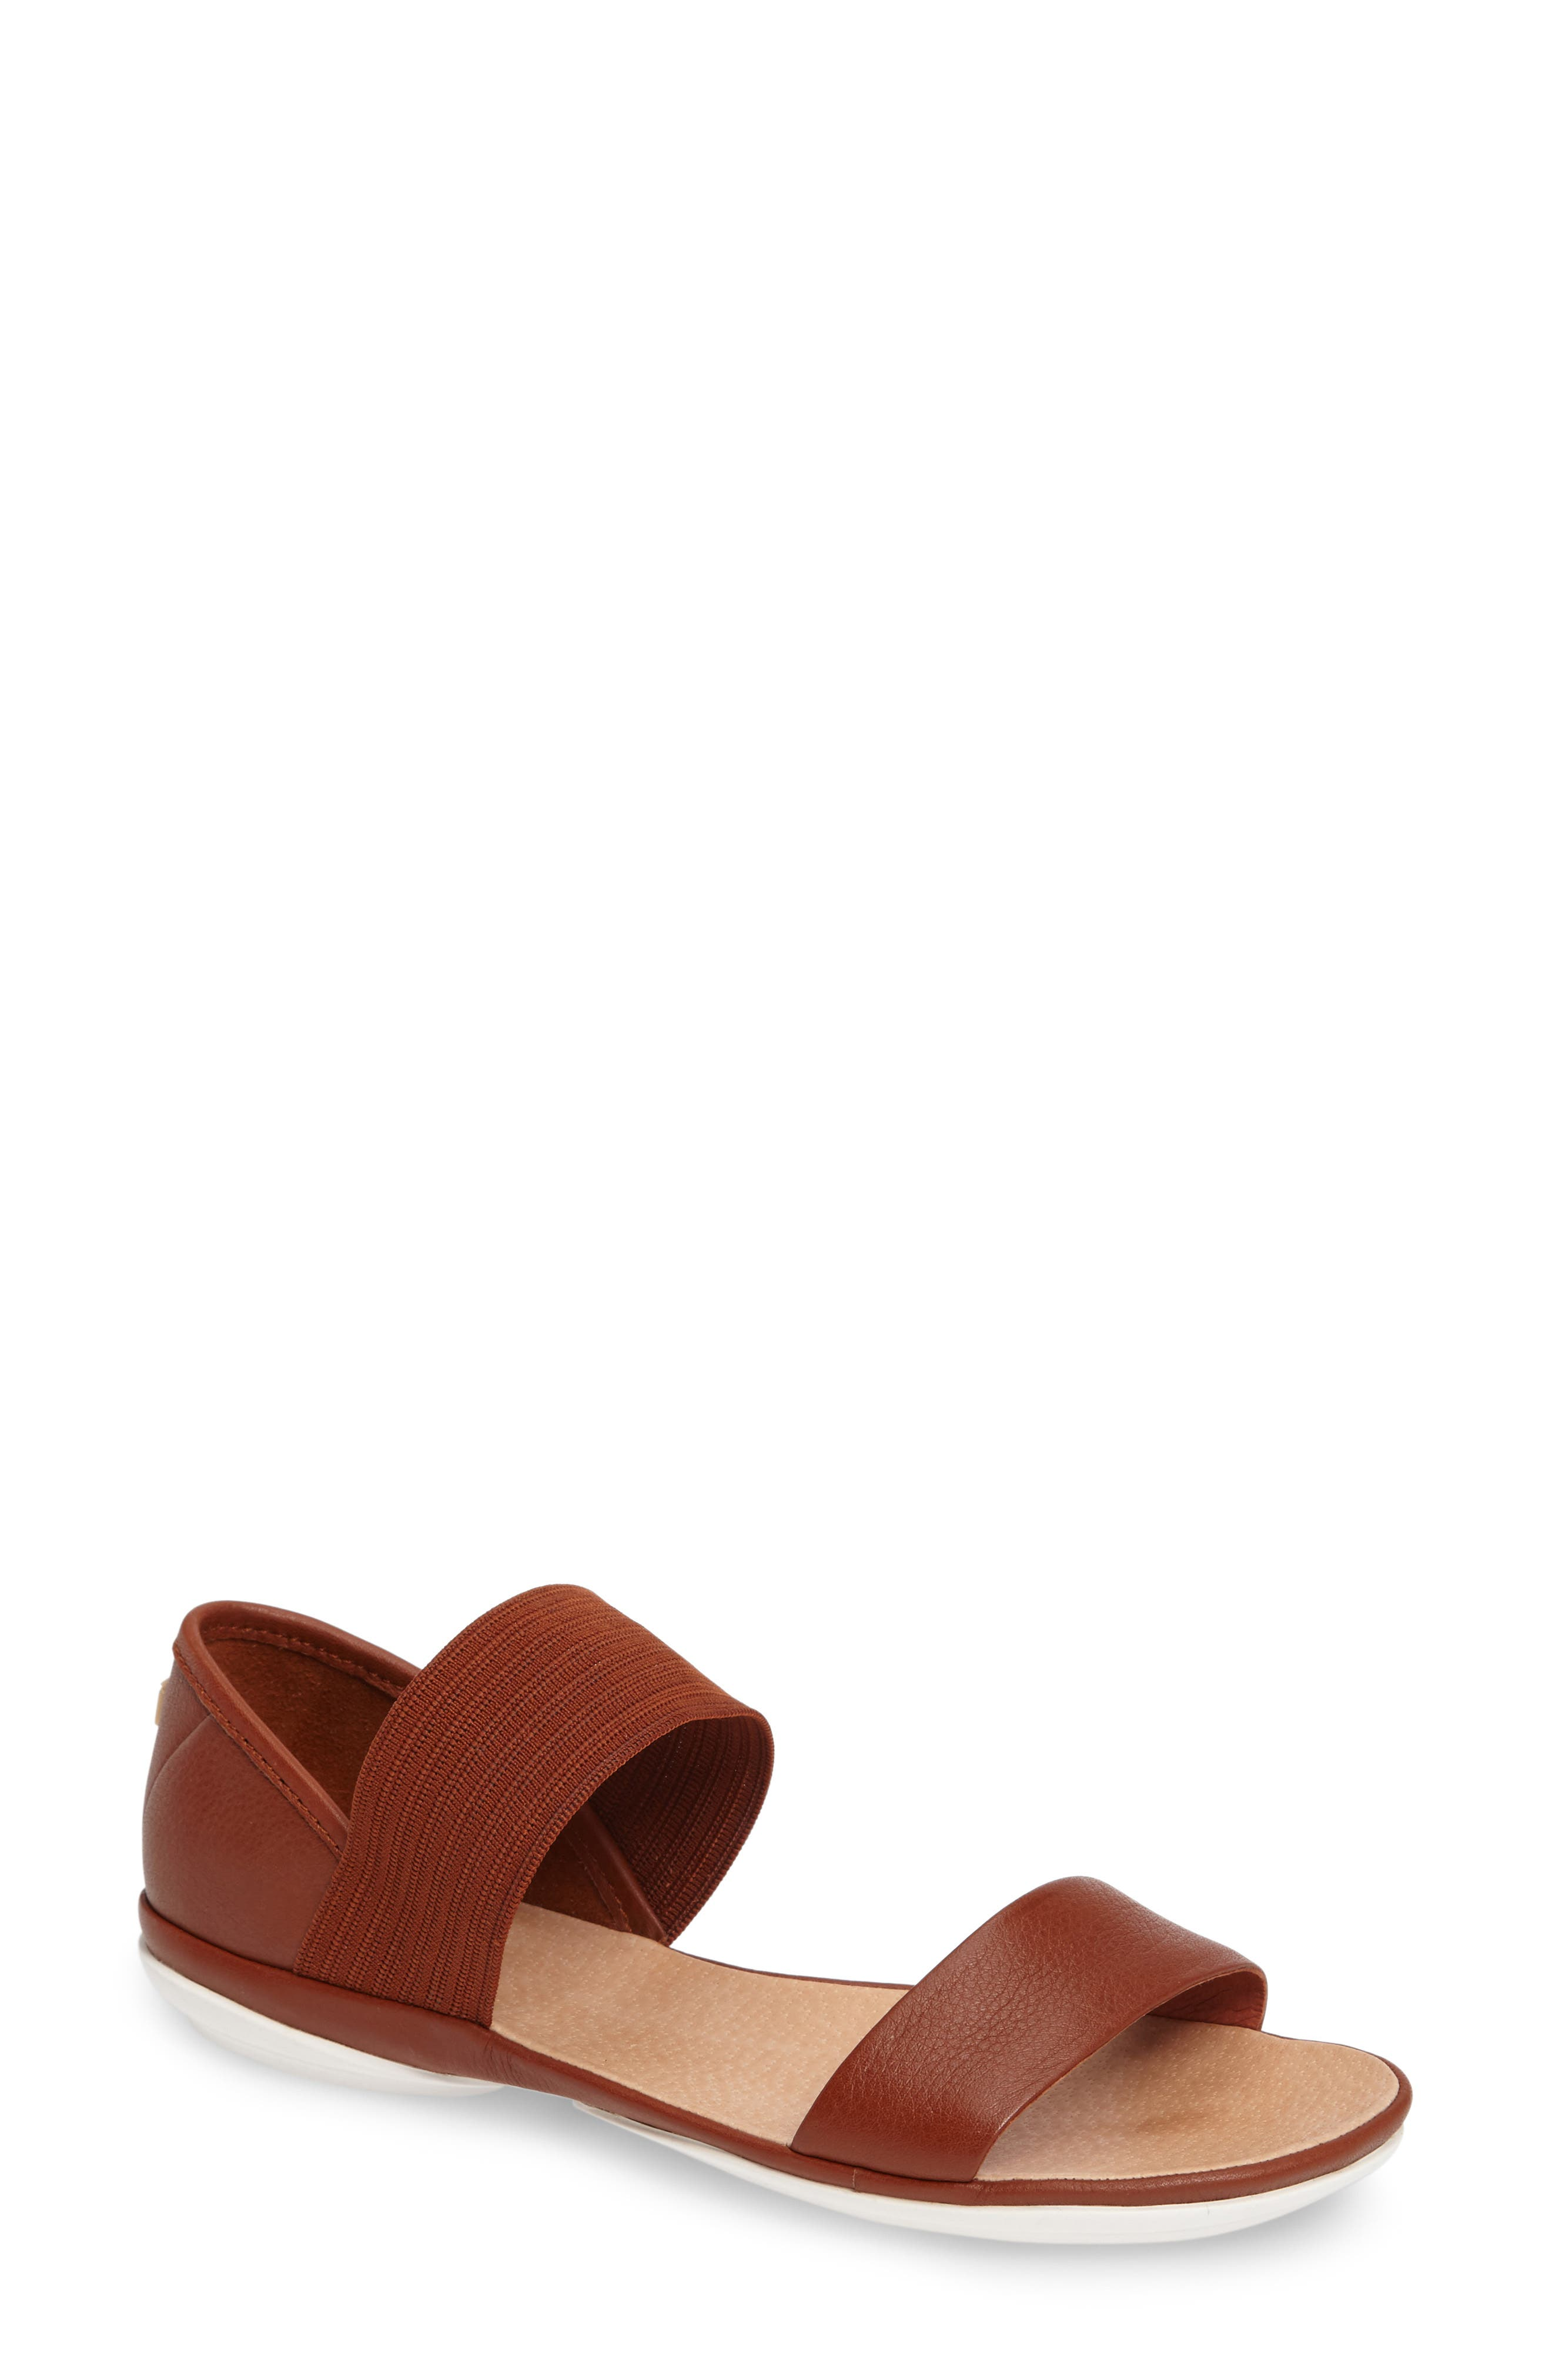 'Right Nina' Sandal,                             Main thumbnail 1, color,                             Brown Leather